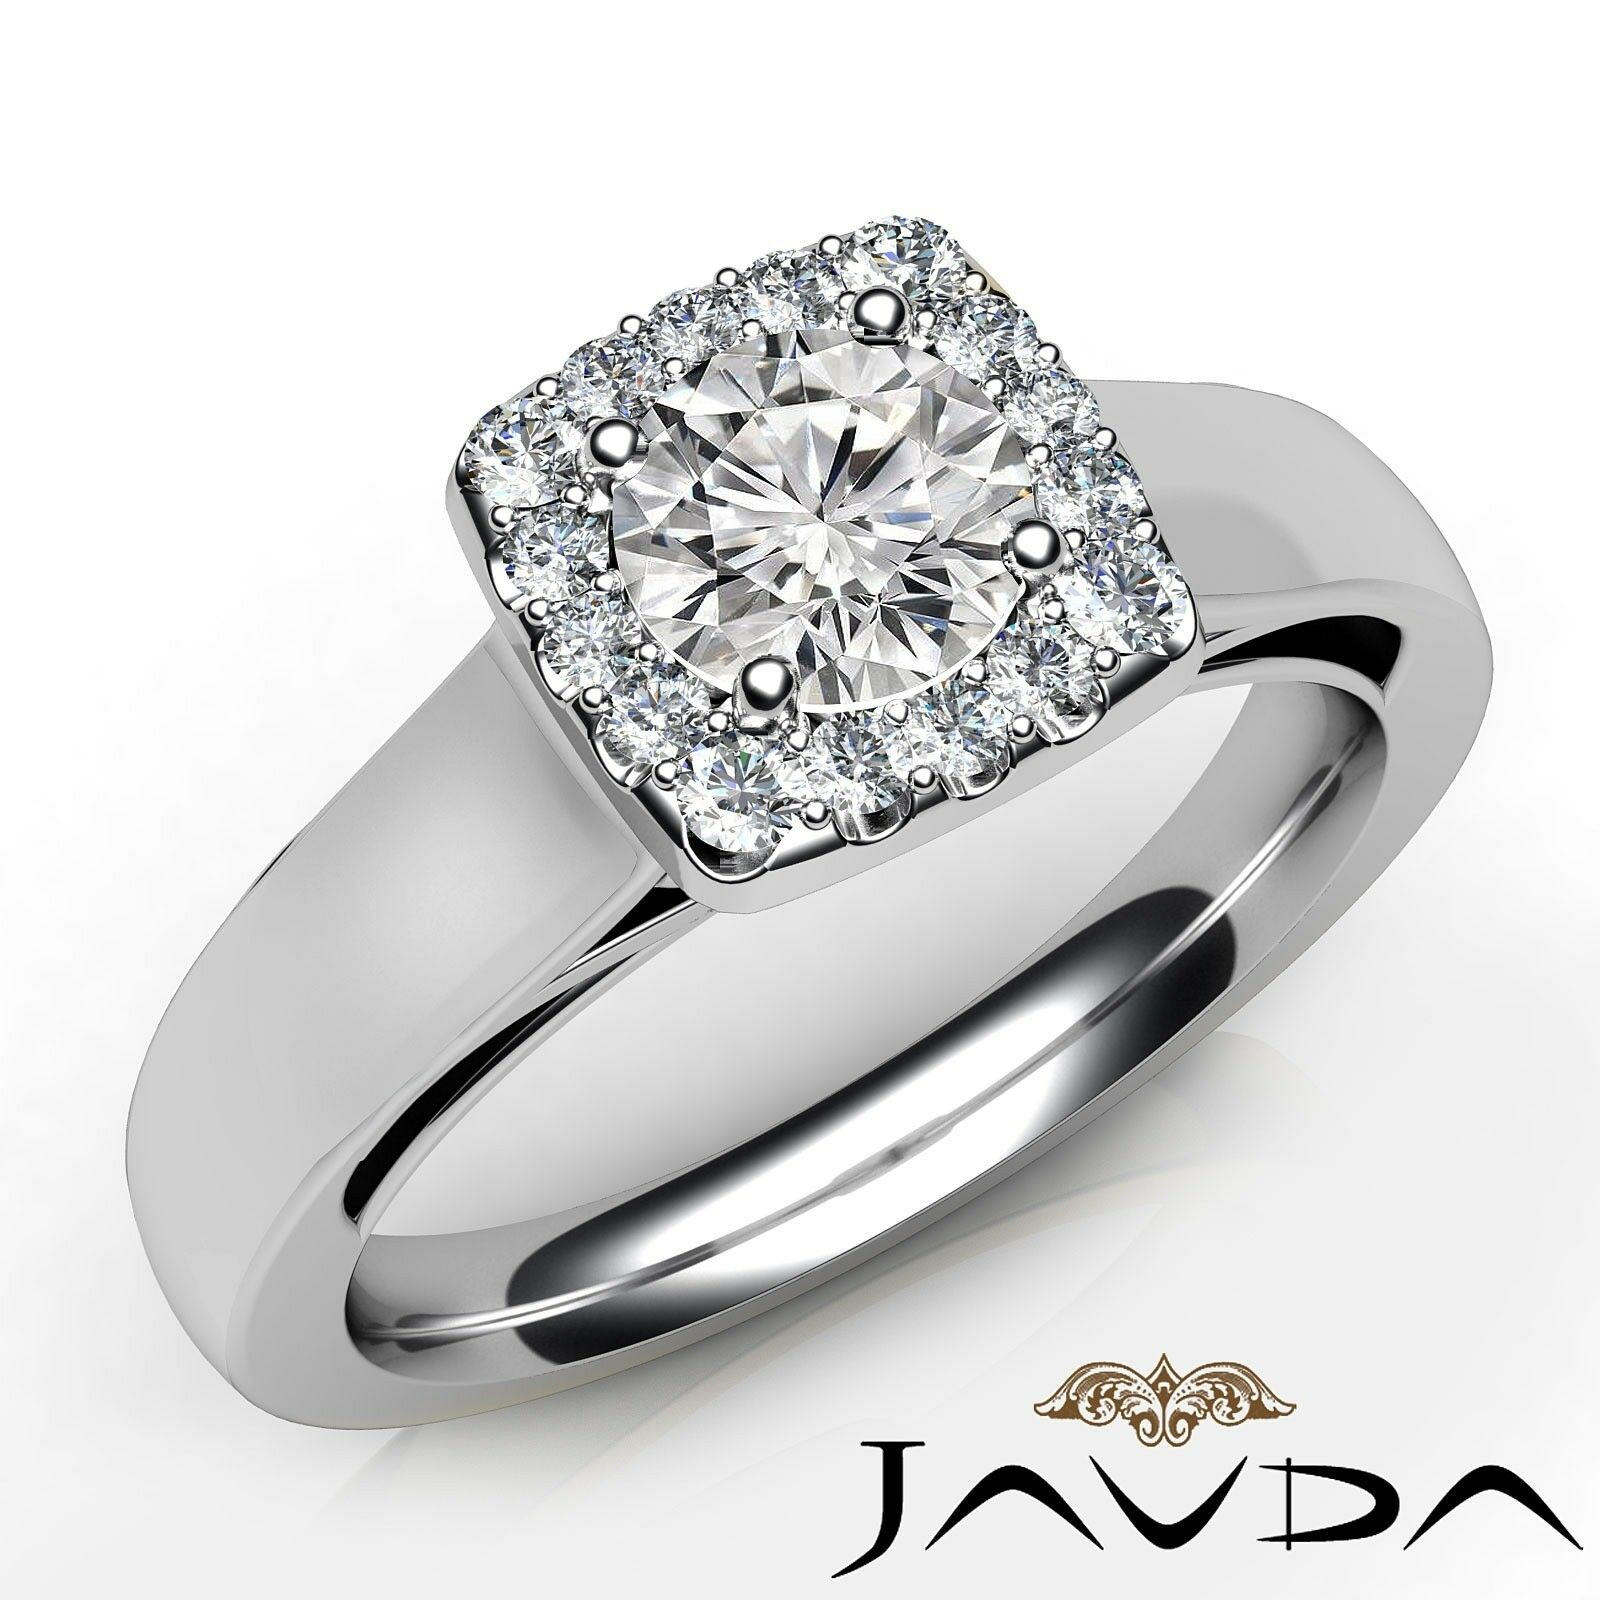 0.6ctw Natural 100% Round Diamond Engagement Ring GIA E-VVS2 White Gold Women